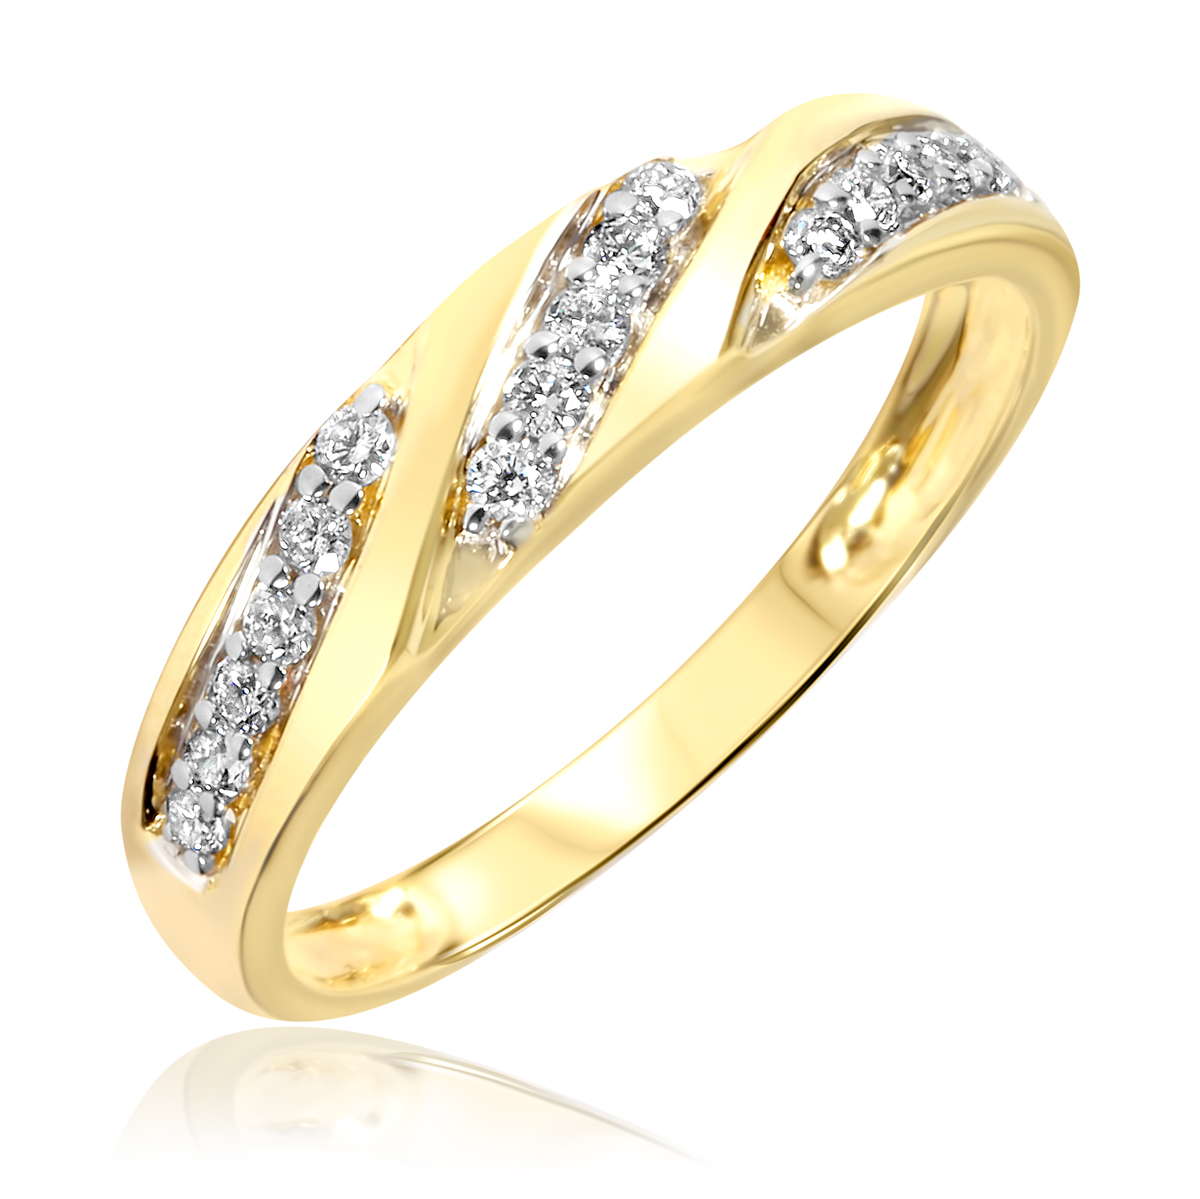 1 4 carat t w s wedding ring 14k yellow